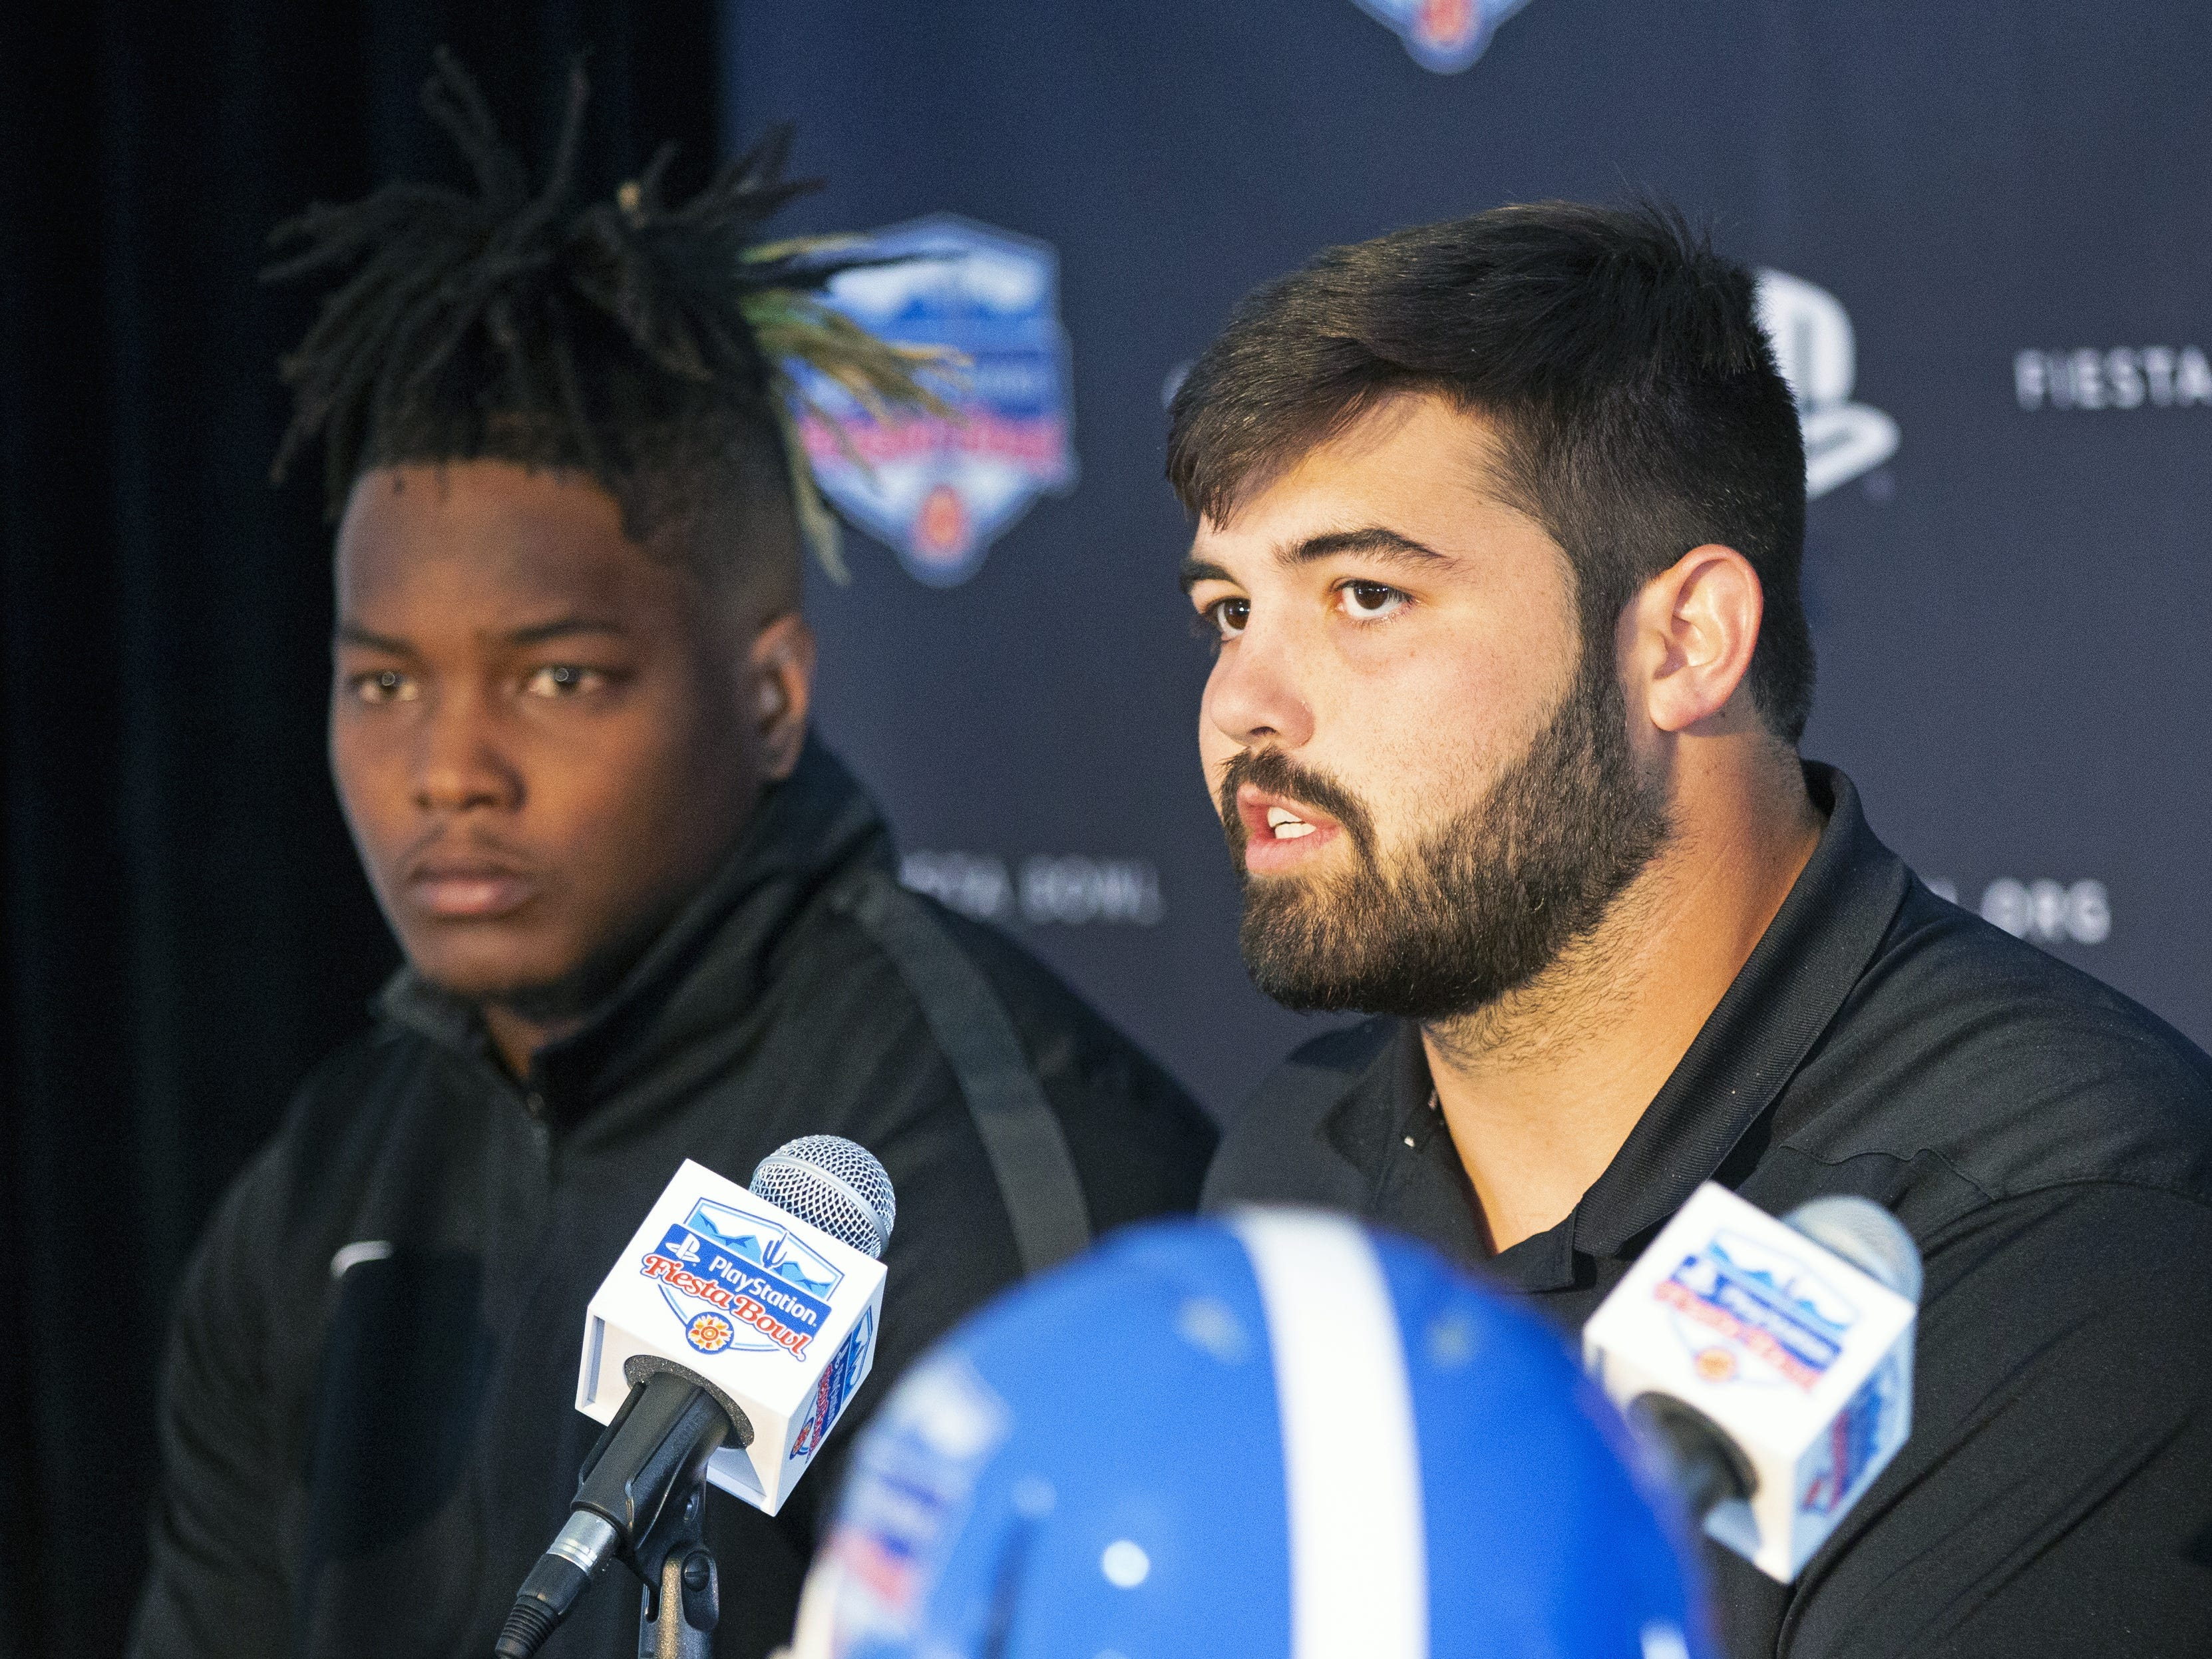 Central Florida defensive lineman, Titus Davis, left, and offensive lineman, Wyatt Miller, speak to the media after arriving at Sky Harbor International Airport in Phoenix on December 27. Central Florida will face LSU in the Fiesta Bowl on New Year's Day.